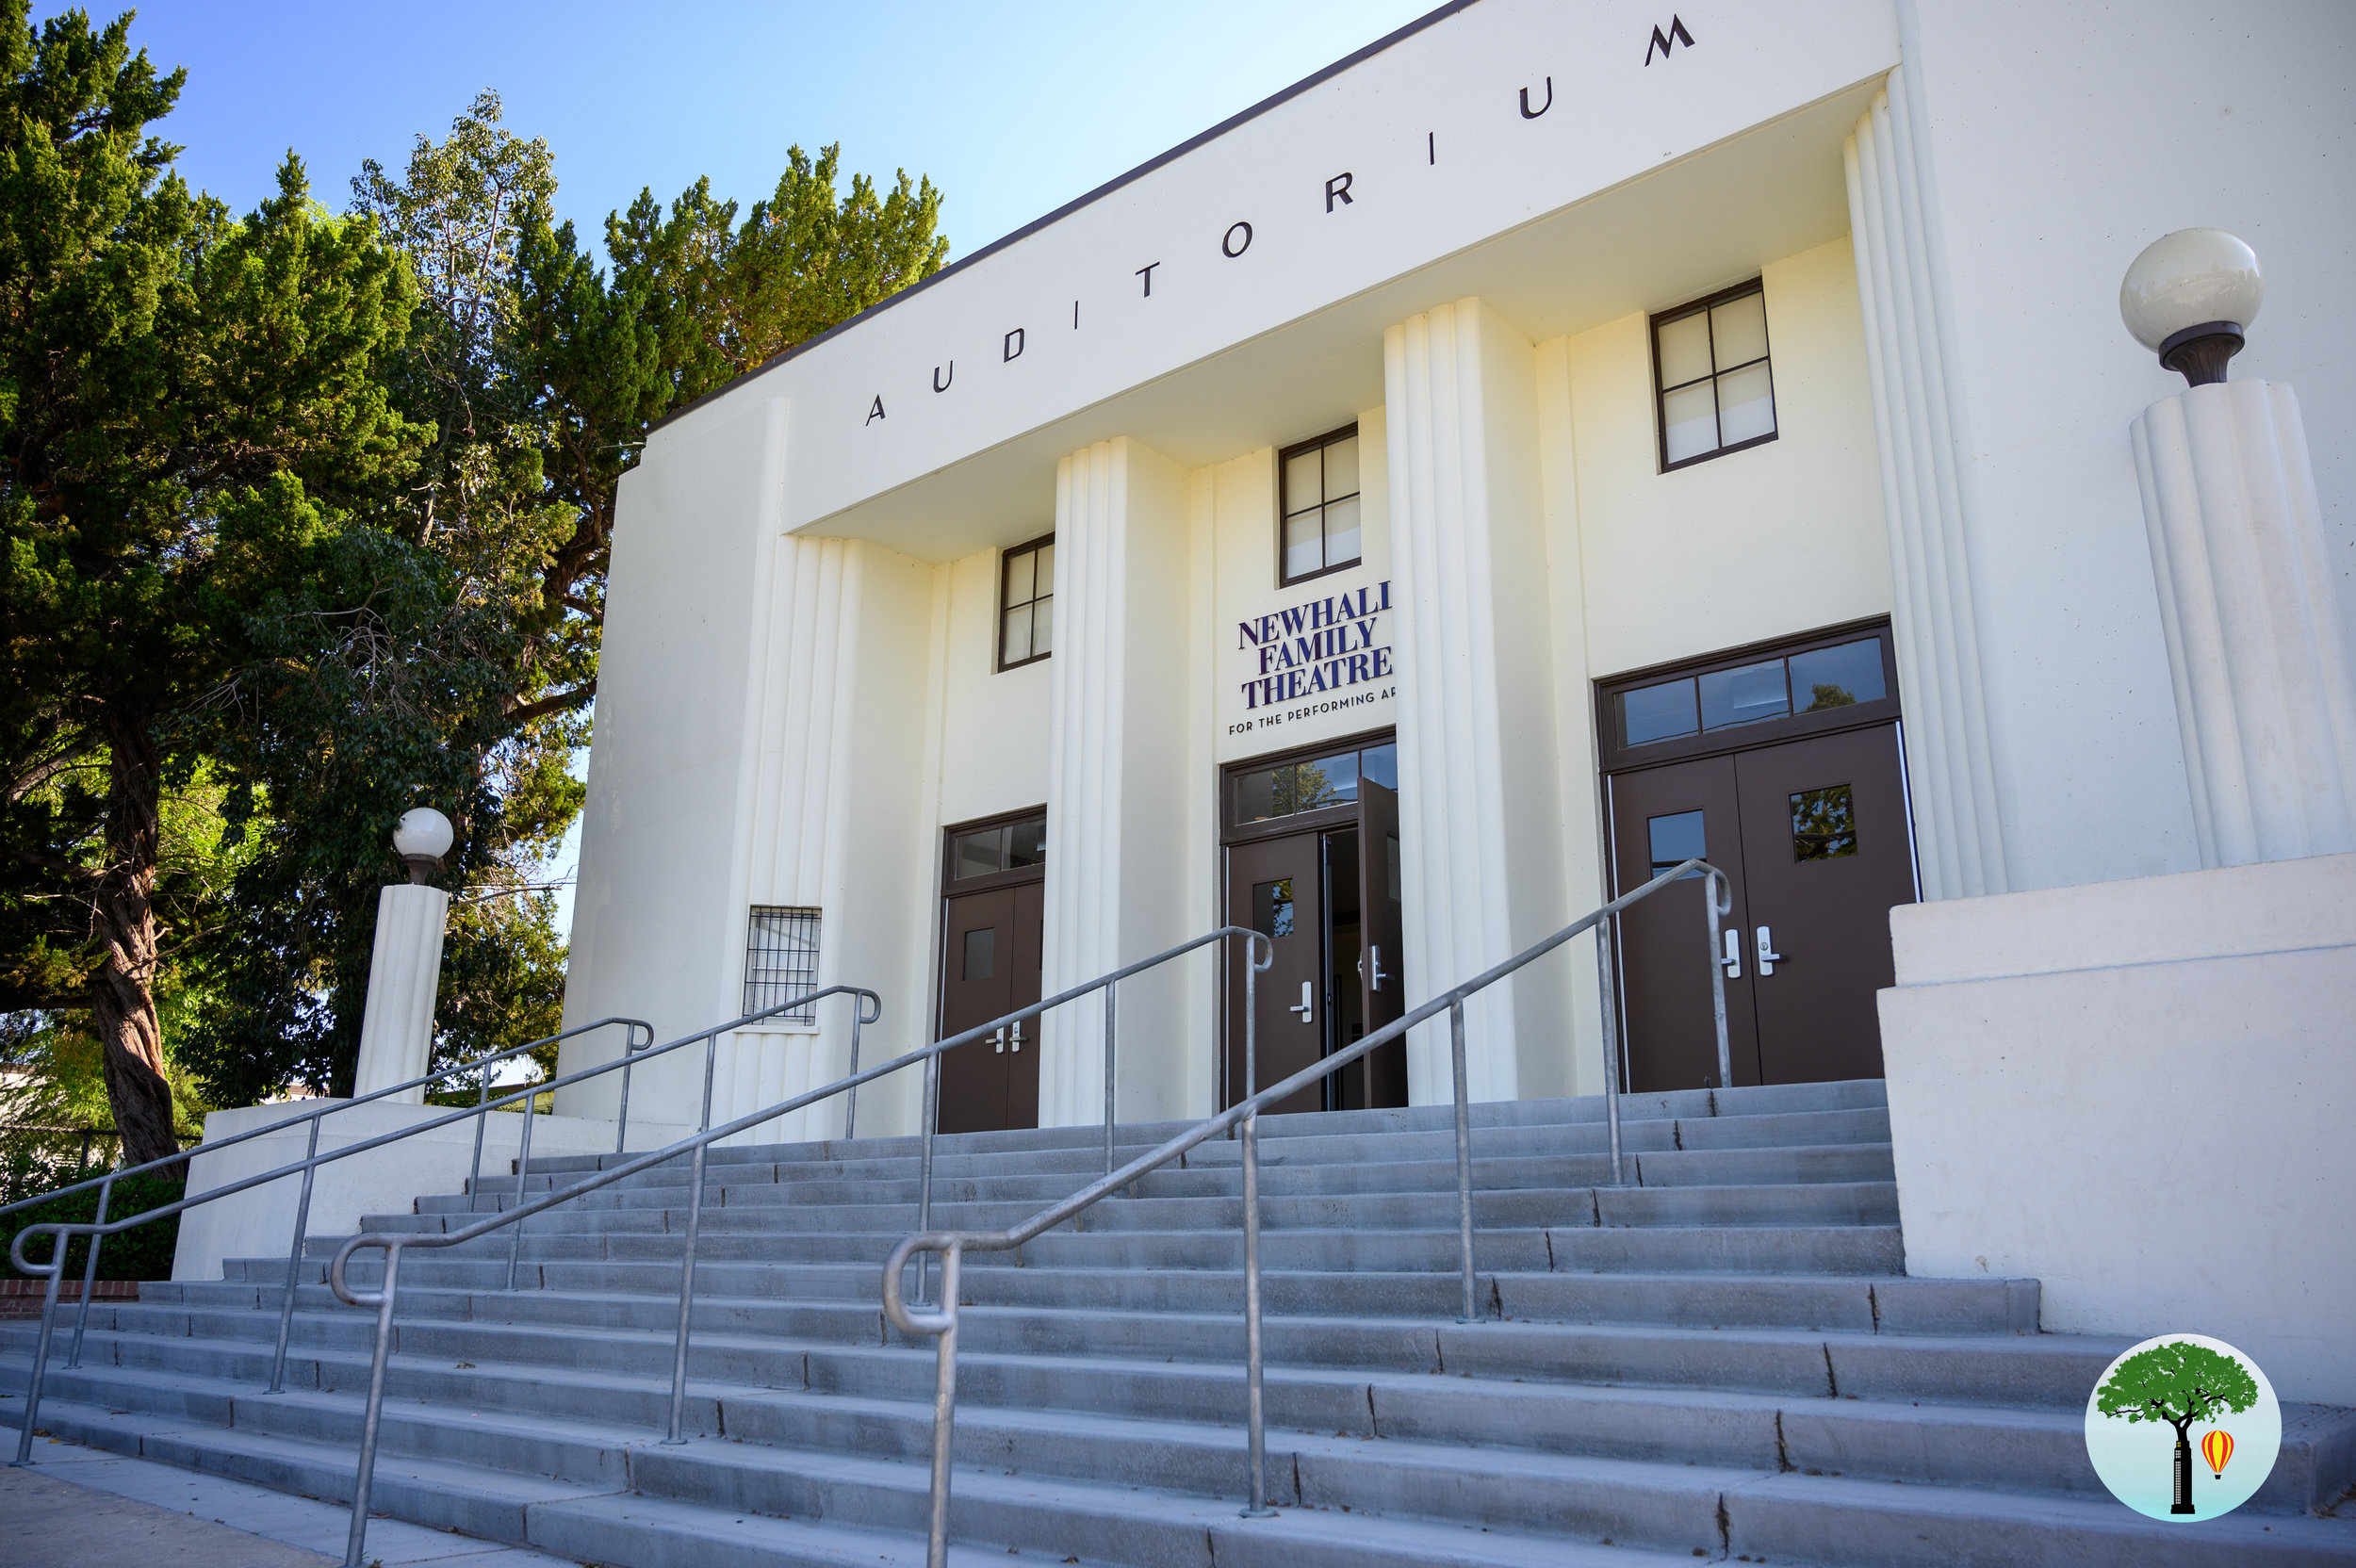 The Newhall Family Theatre for the Performing Arts